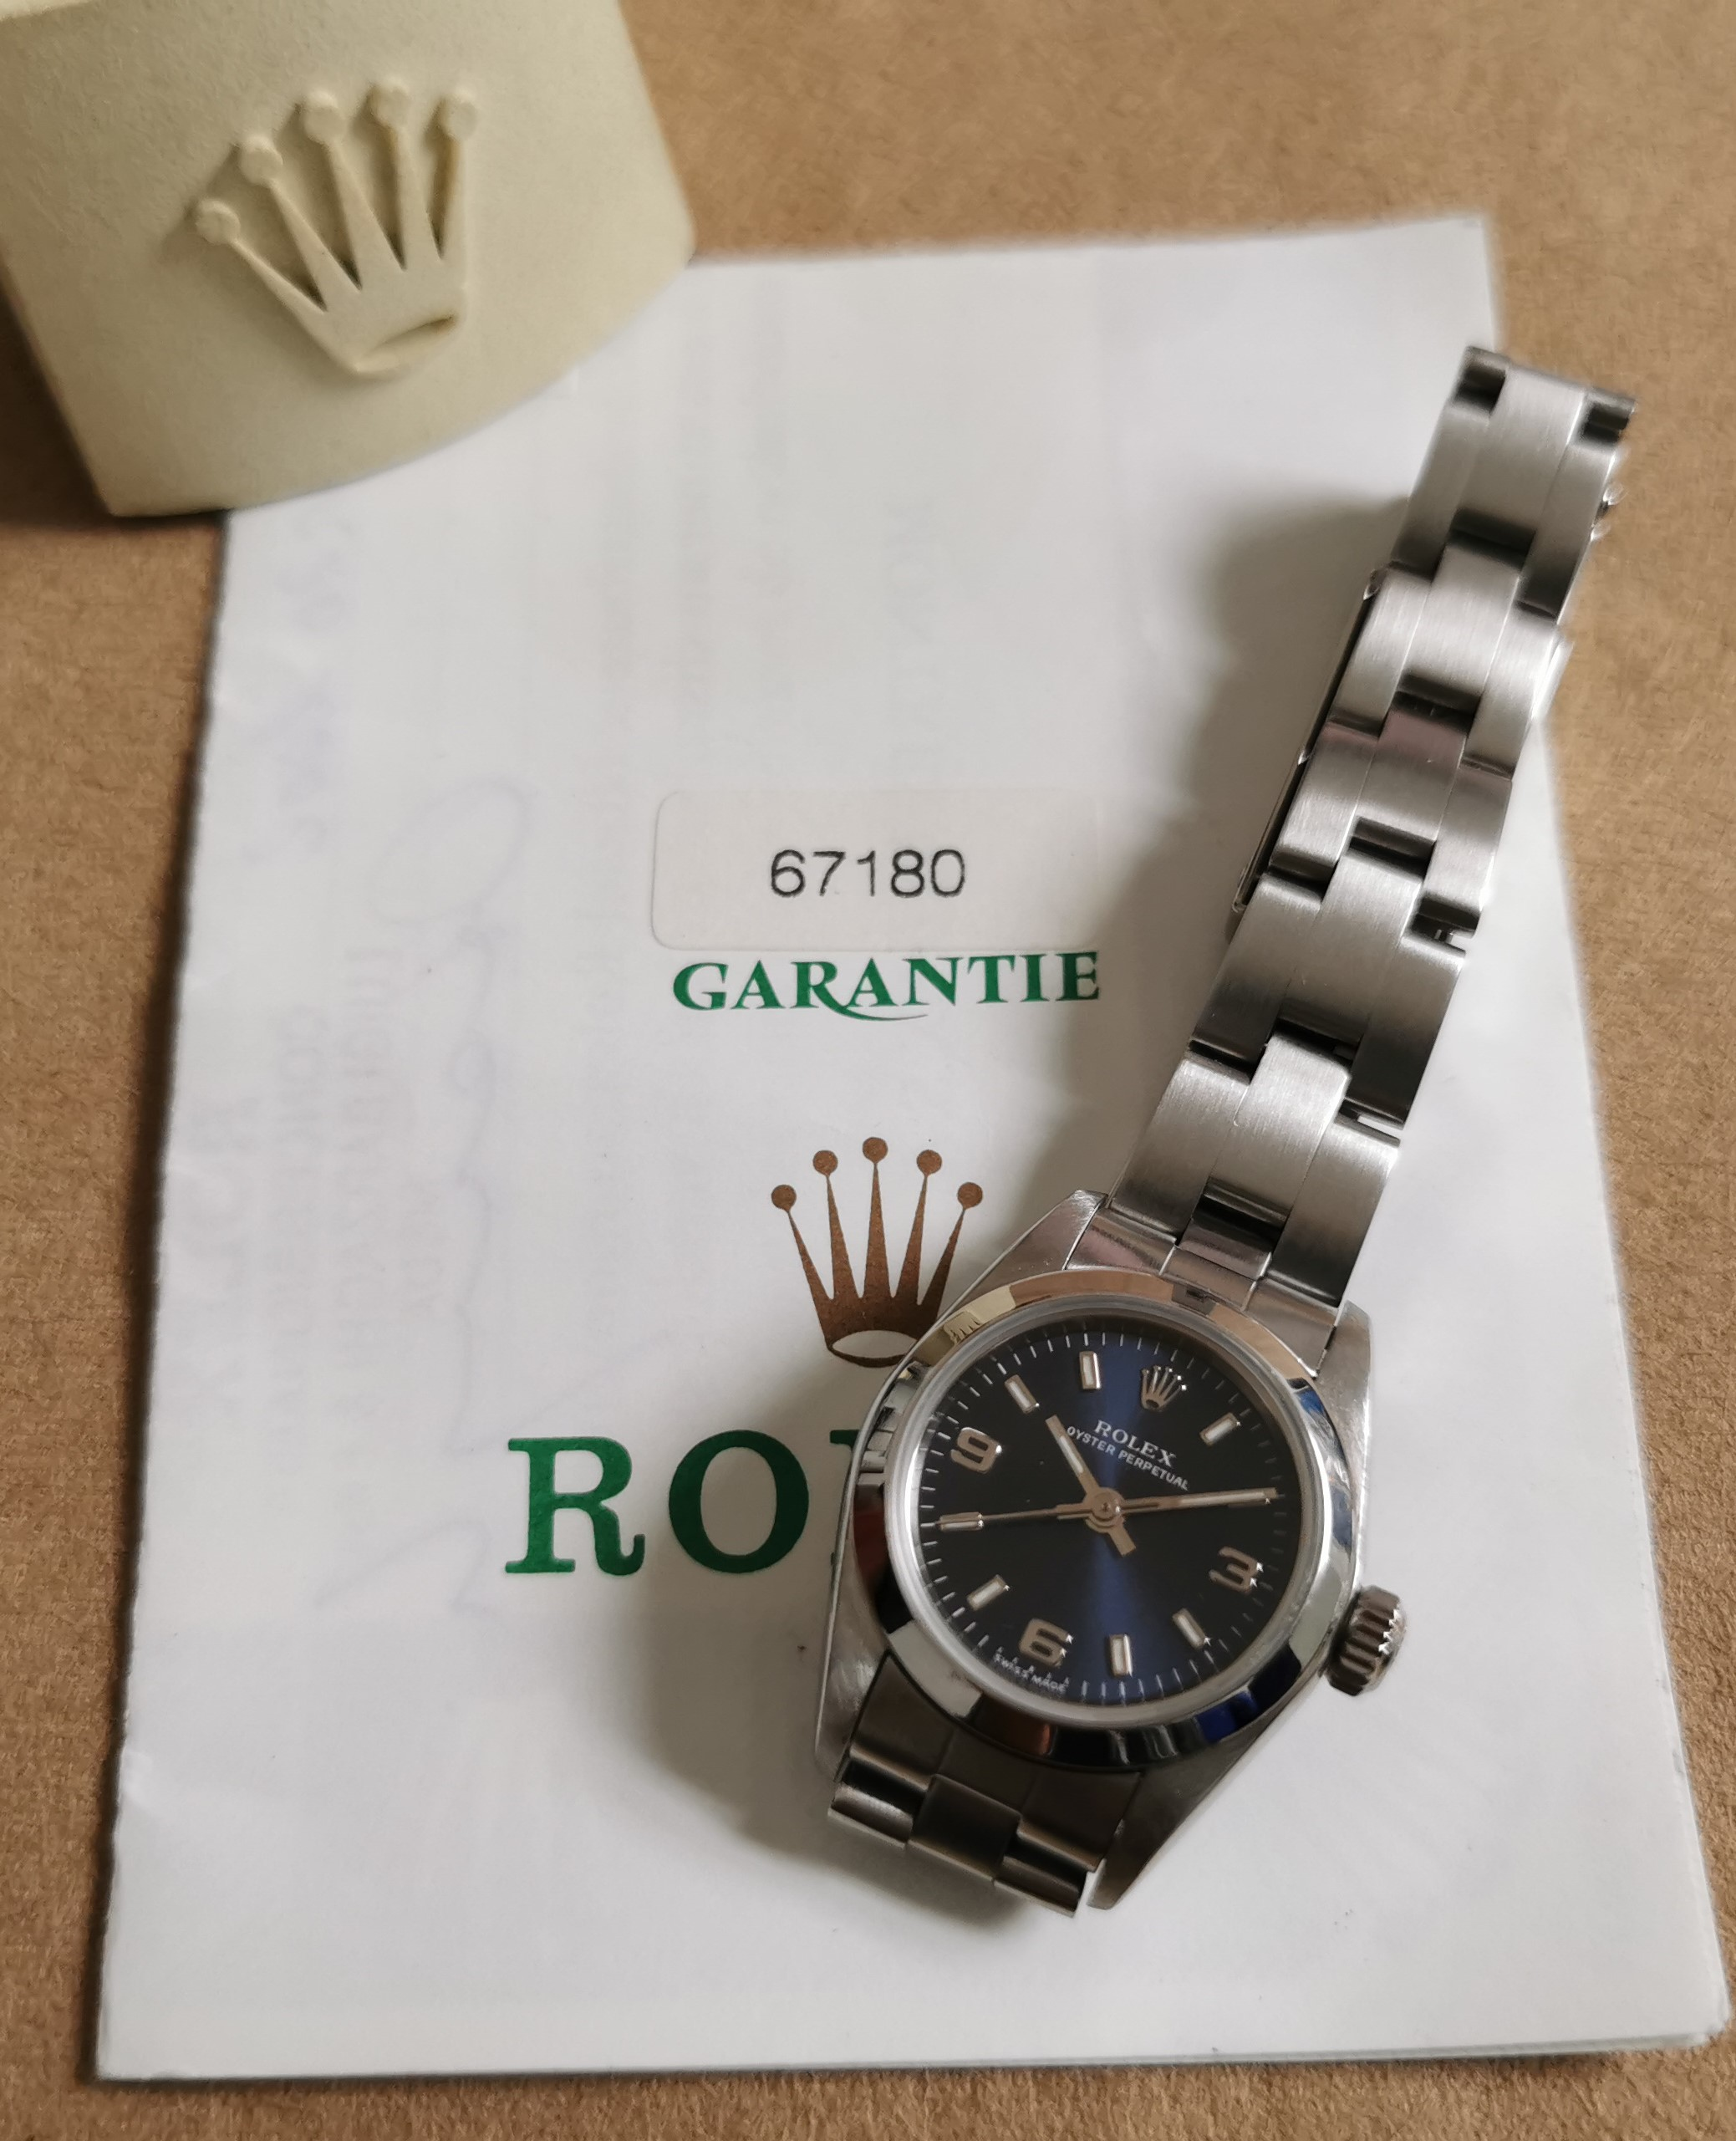 Rolex Oyster Perpetual Lady Oyster Perpetual No date Ladies Steel Blue 3-6-9 Dial Watch 67180 Warranty 1998 | San Giorgio a Cremano